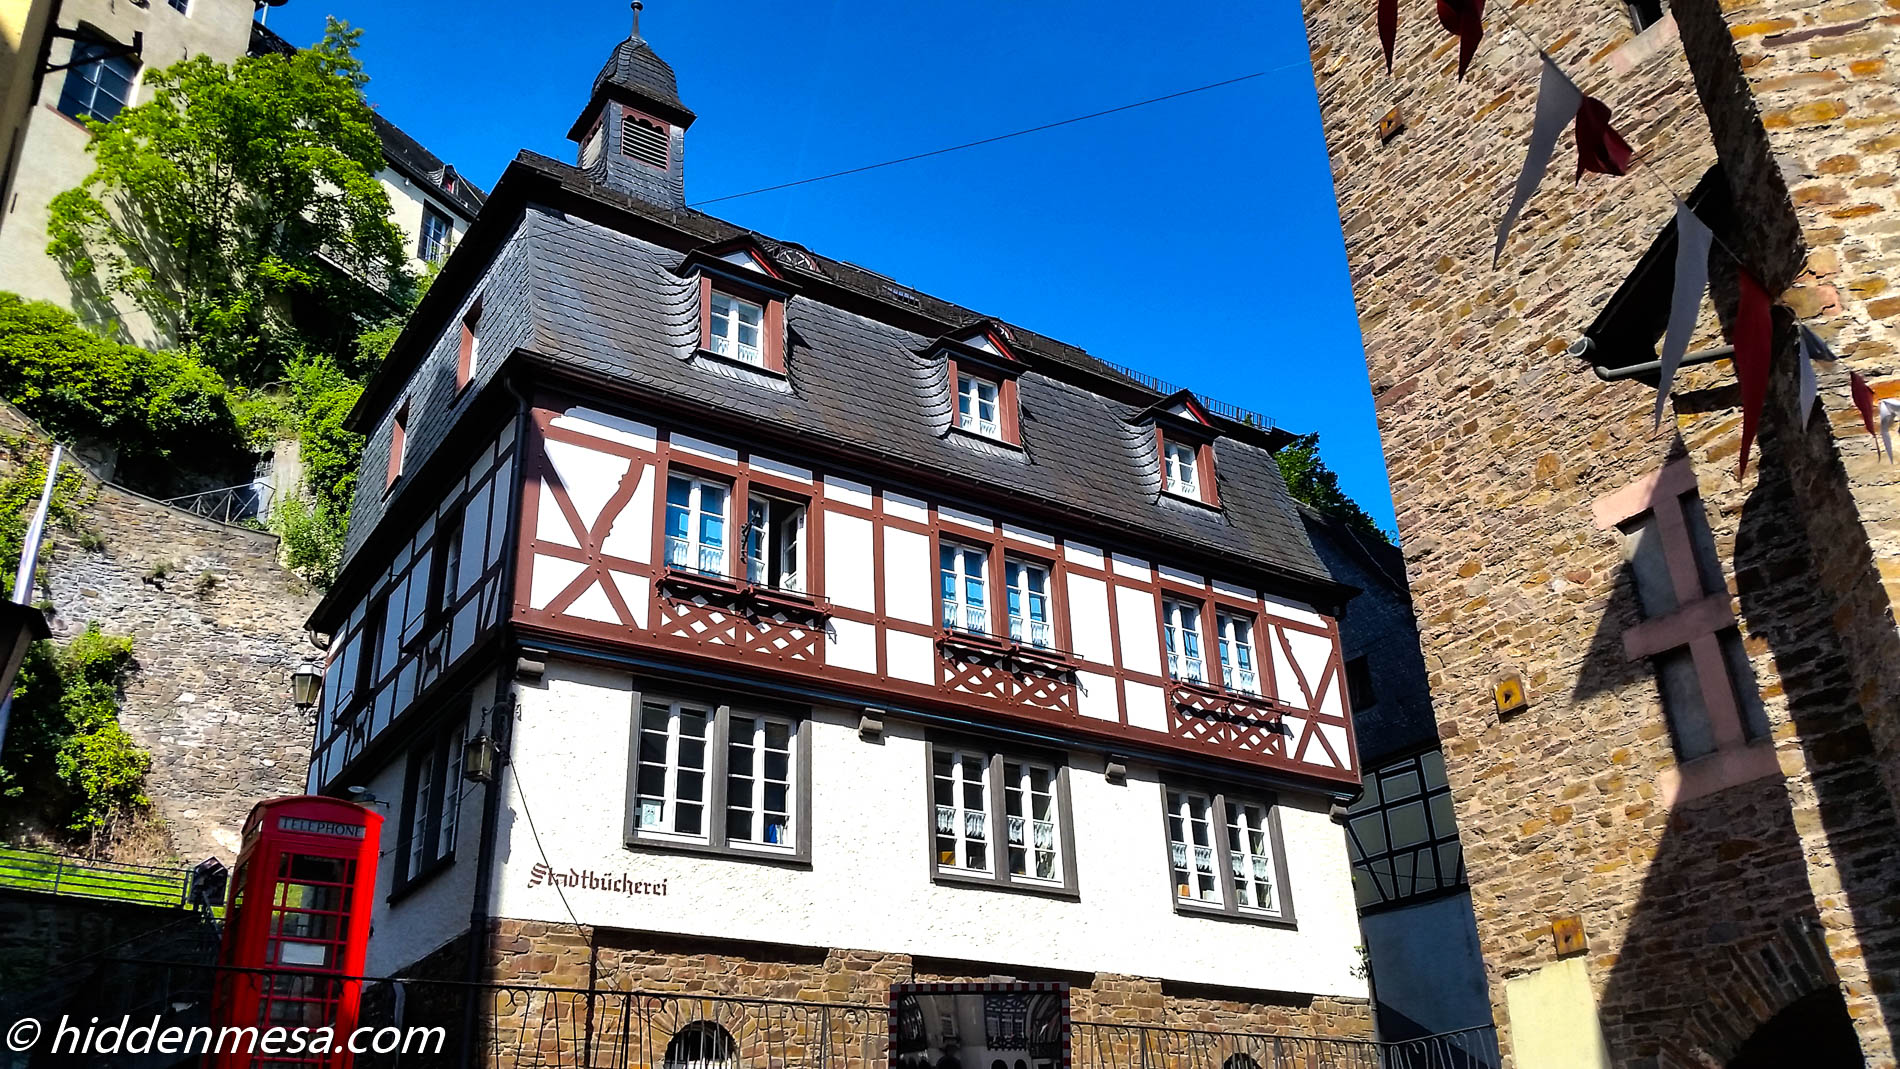 One of Hundreds of Interesting Buildings in Old Town, Cochem